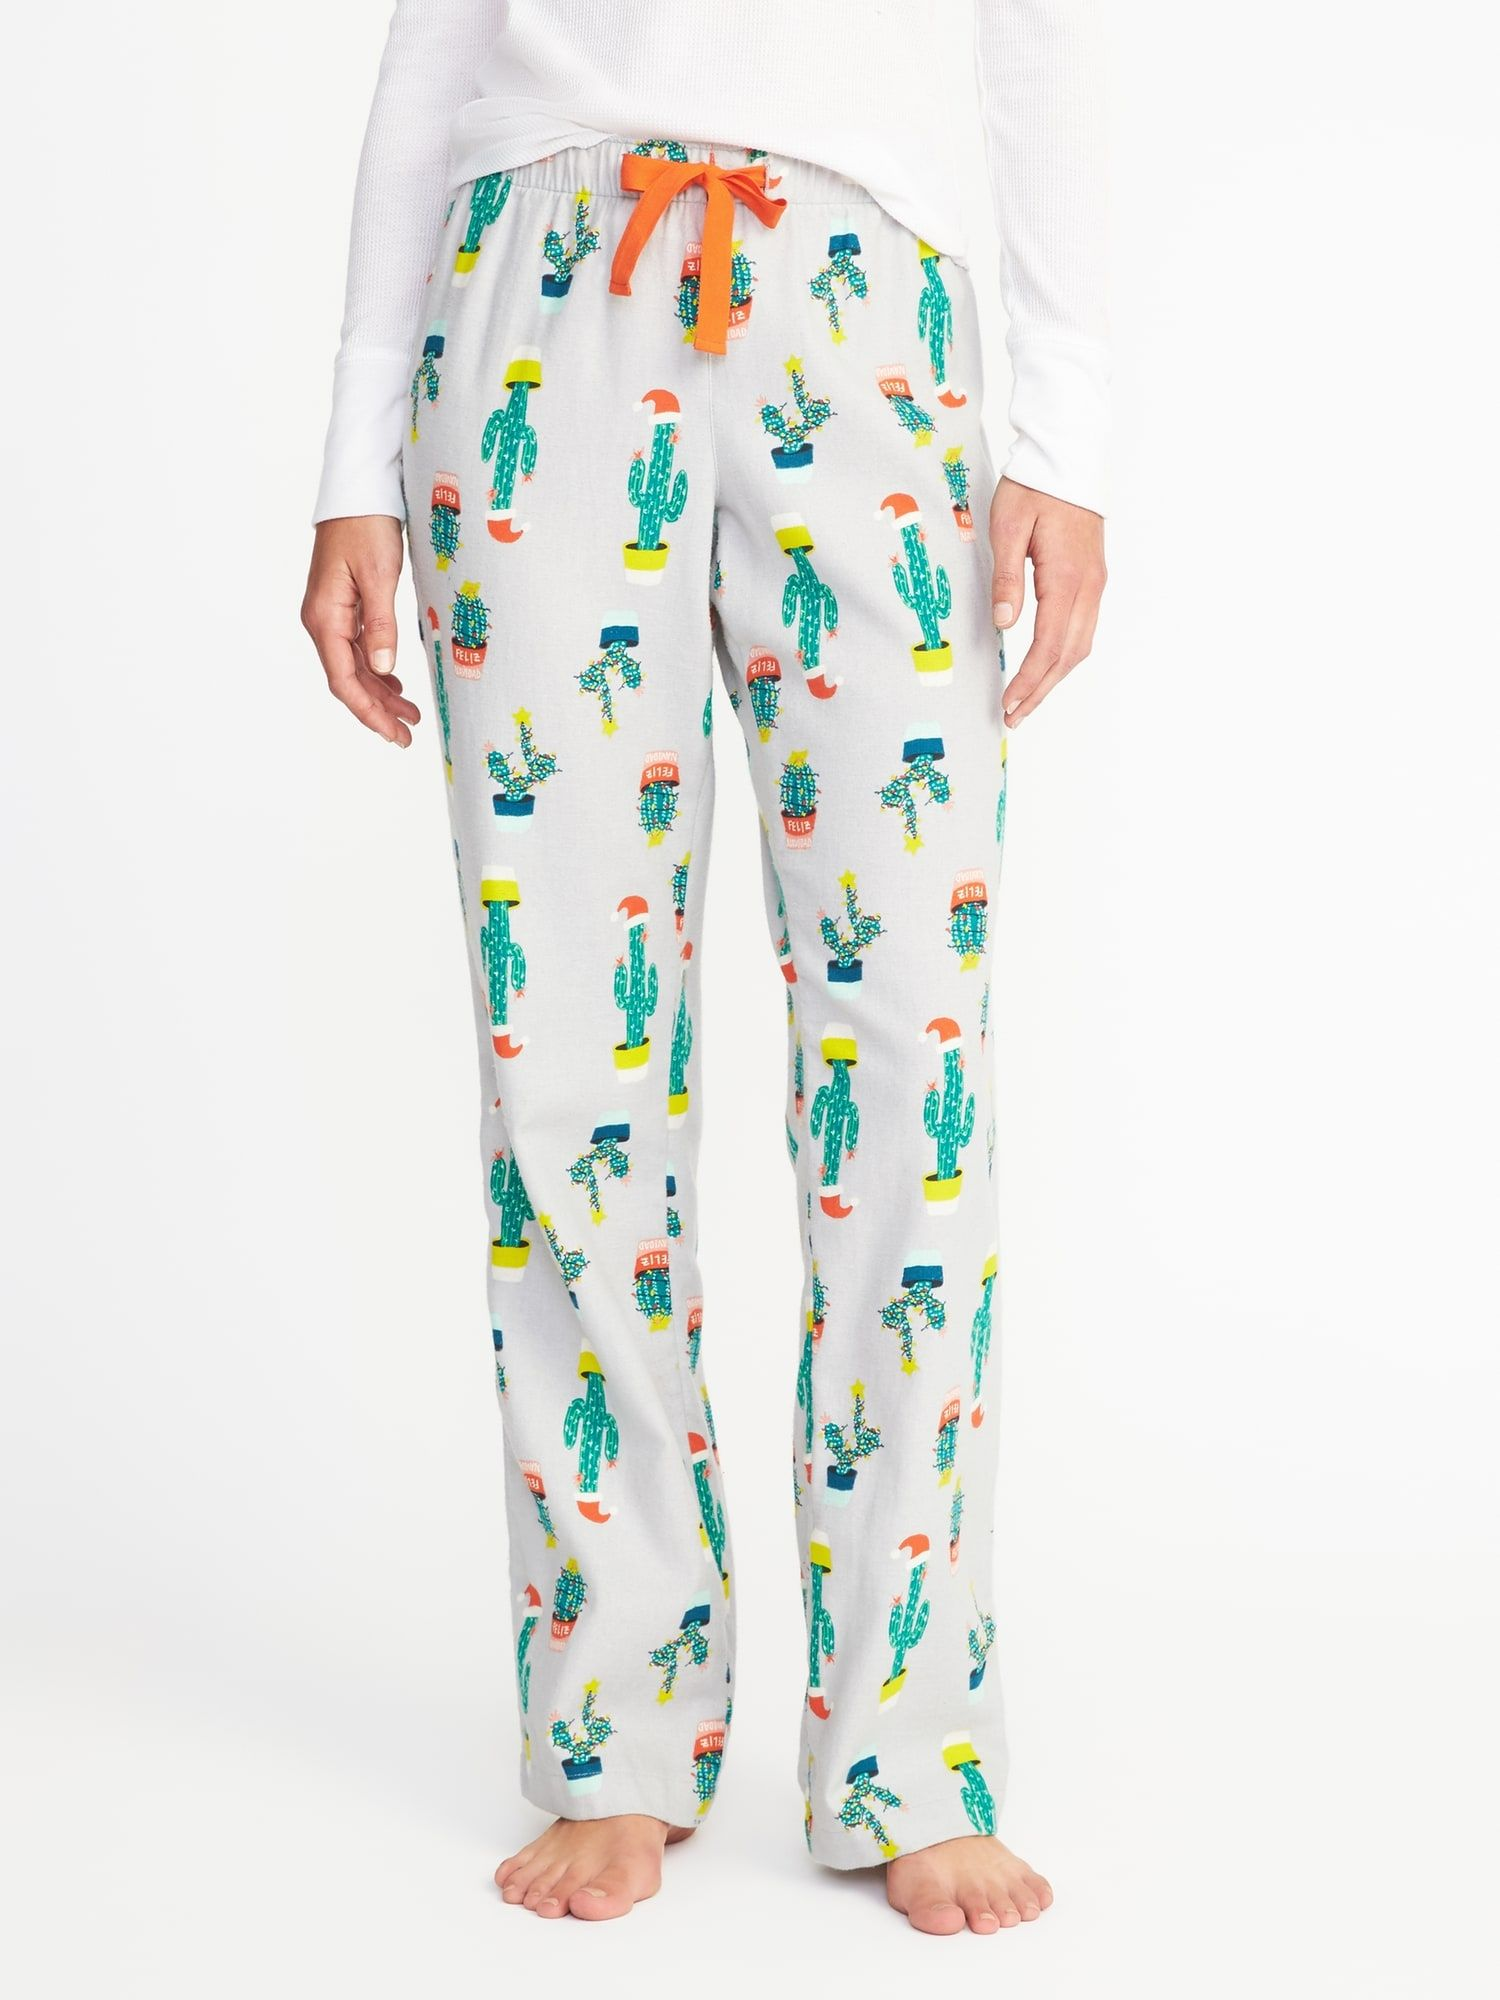 printed flannel sleep pants for women old navy old navy christmas pajamas old - Christmas Pajamas Old Navy